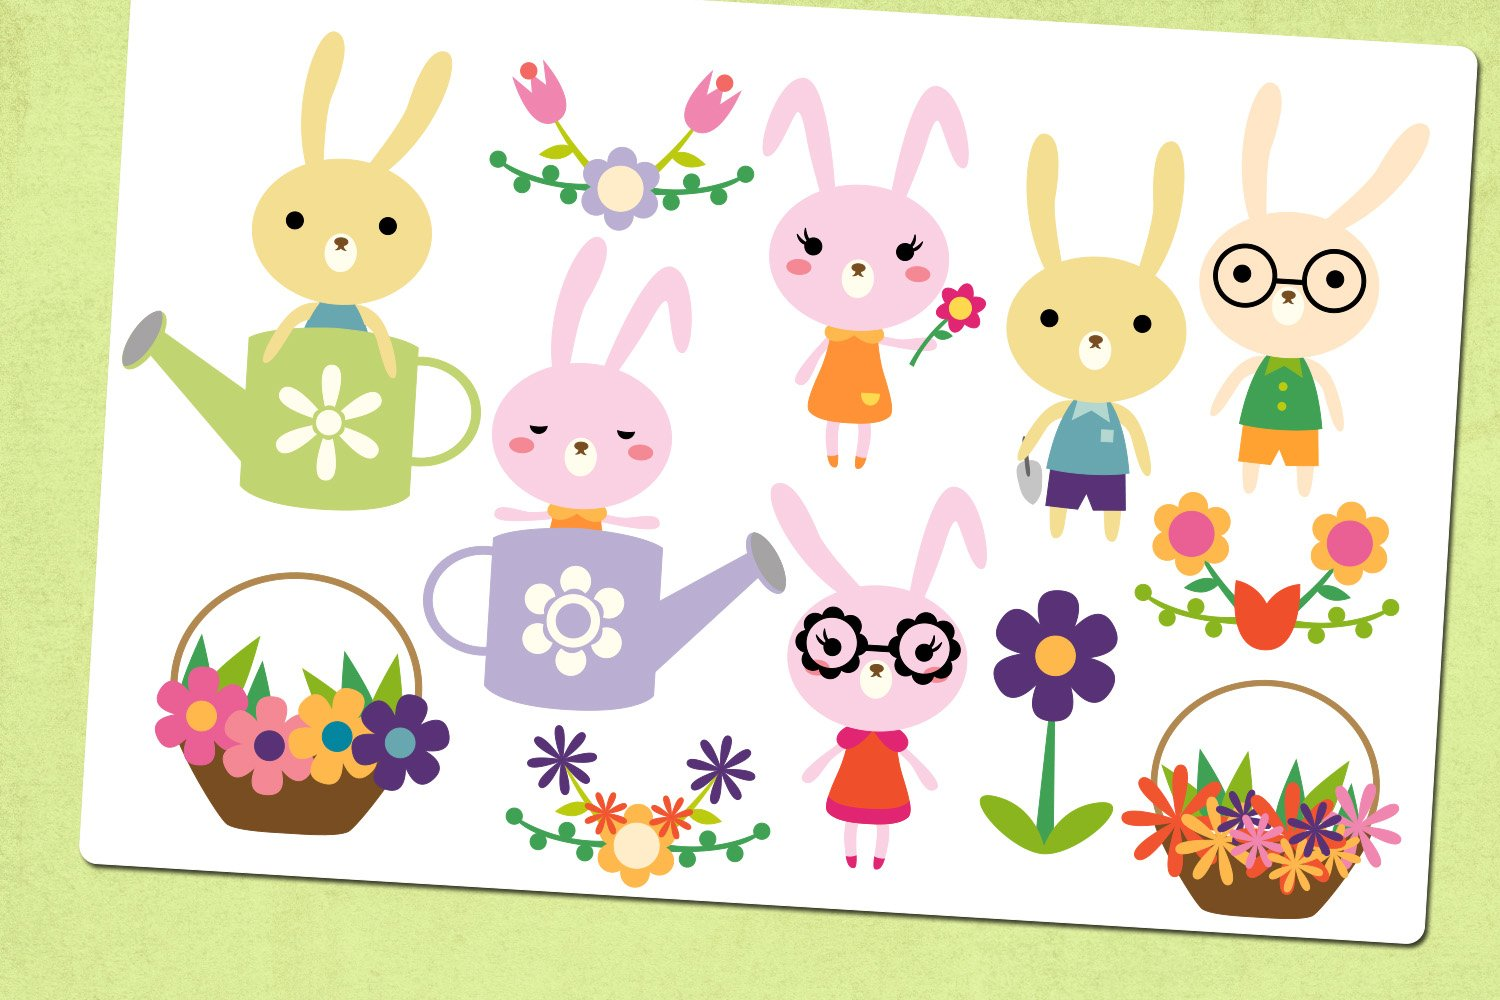 Spring bunny garden illustrations clip art example image 4